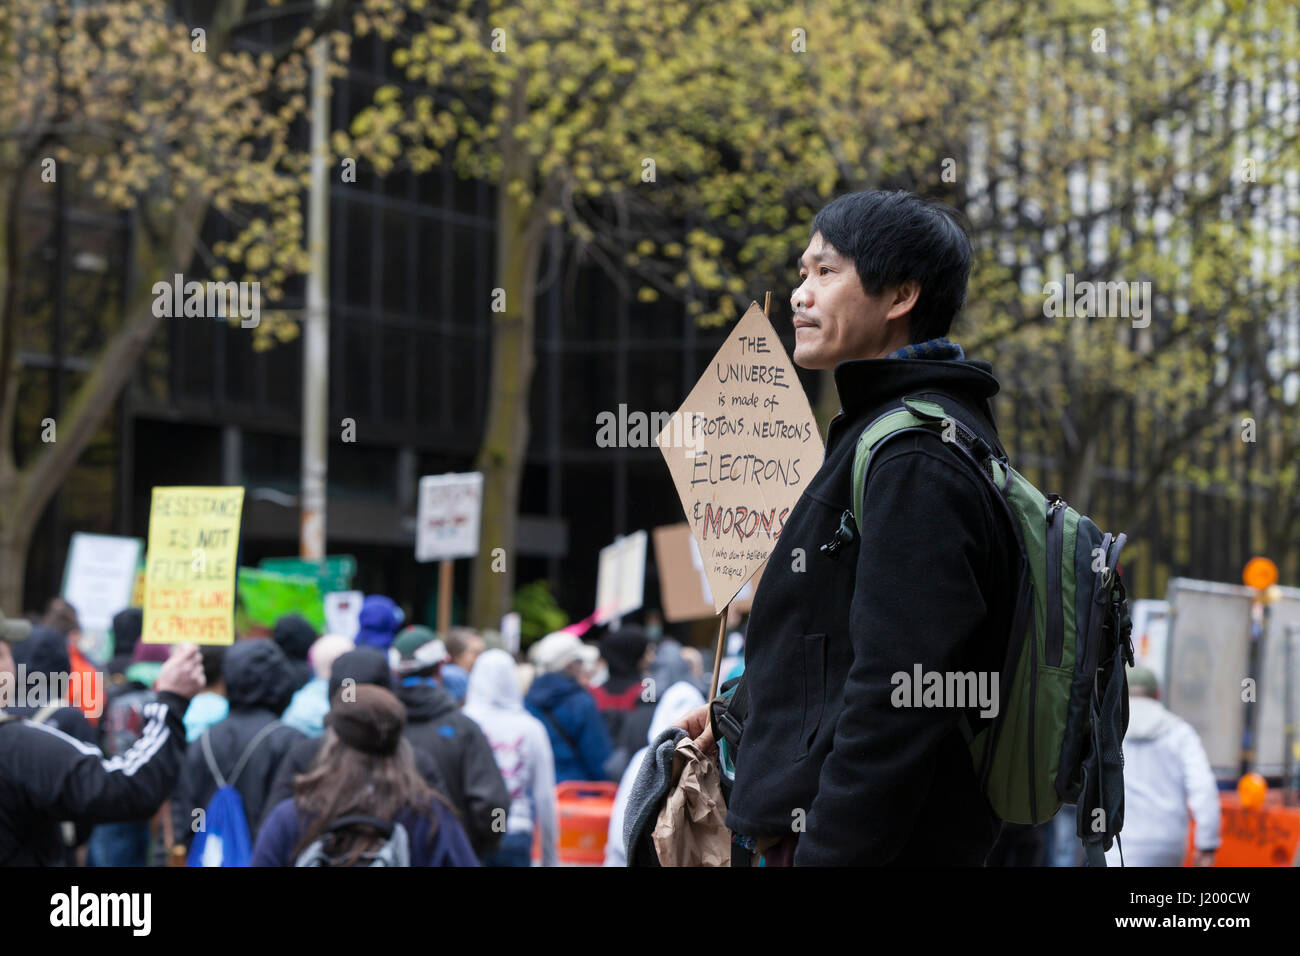 Seattle, Washington,USA. 22nd April, 2017. Bingram L. holds a protest sign at Seattle Cinerama. The March for Science Stock Photo